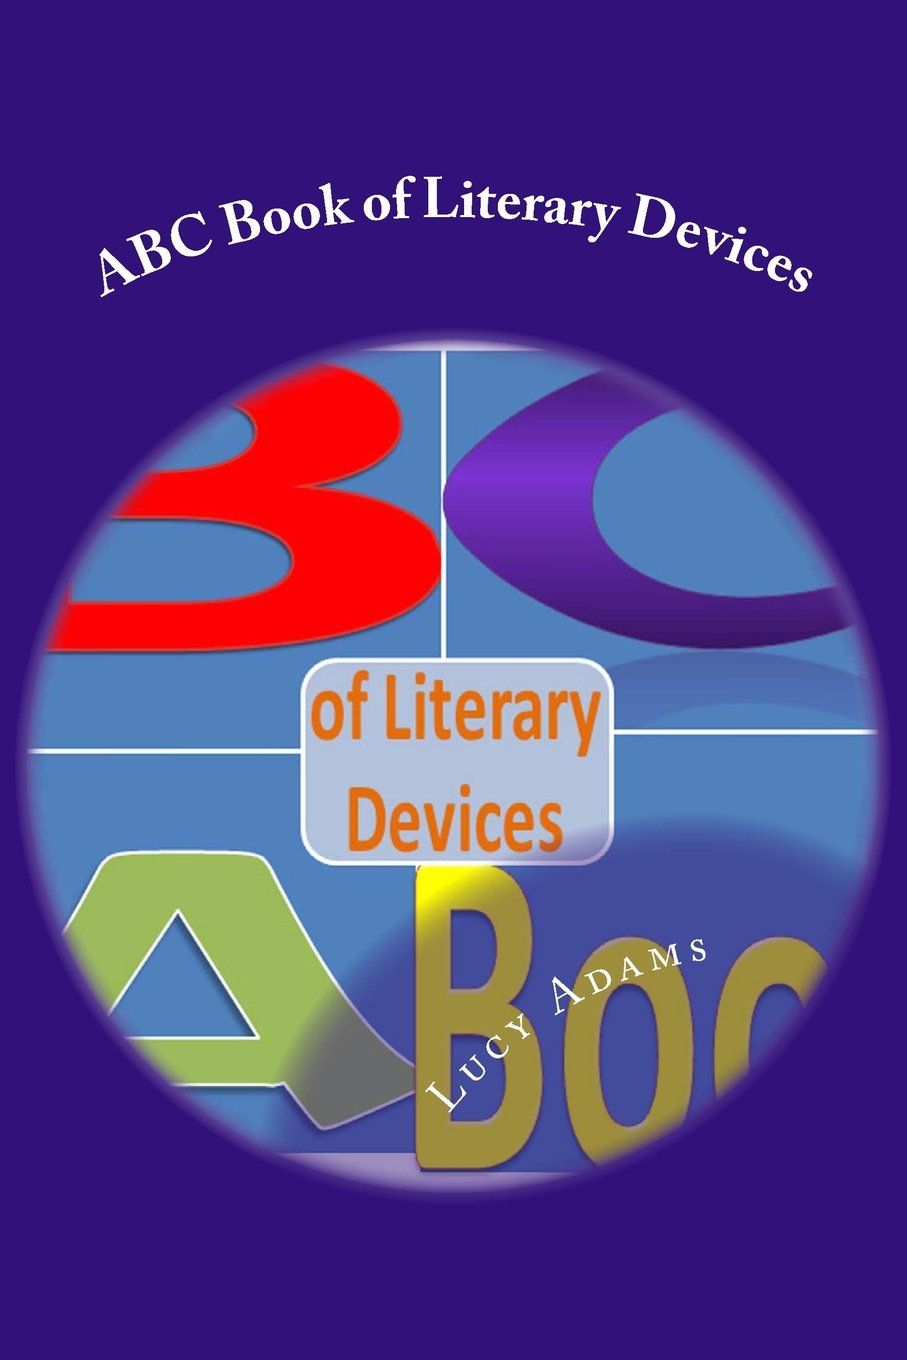 http://www.amazon.com/Book-Literary-Devices-Lucy-Adams/dp/1469966417/ref=sr_1_1?s=books&ie=UTF8&qid=1383682658&sr=1-1&keywords=ABC+book+of+literary+devices